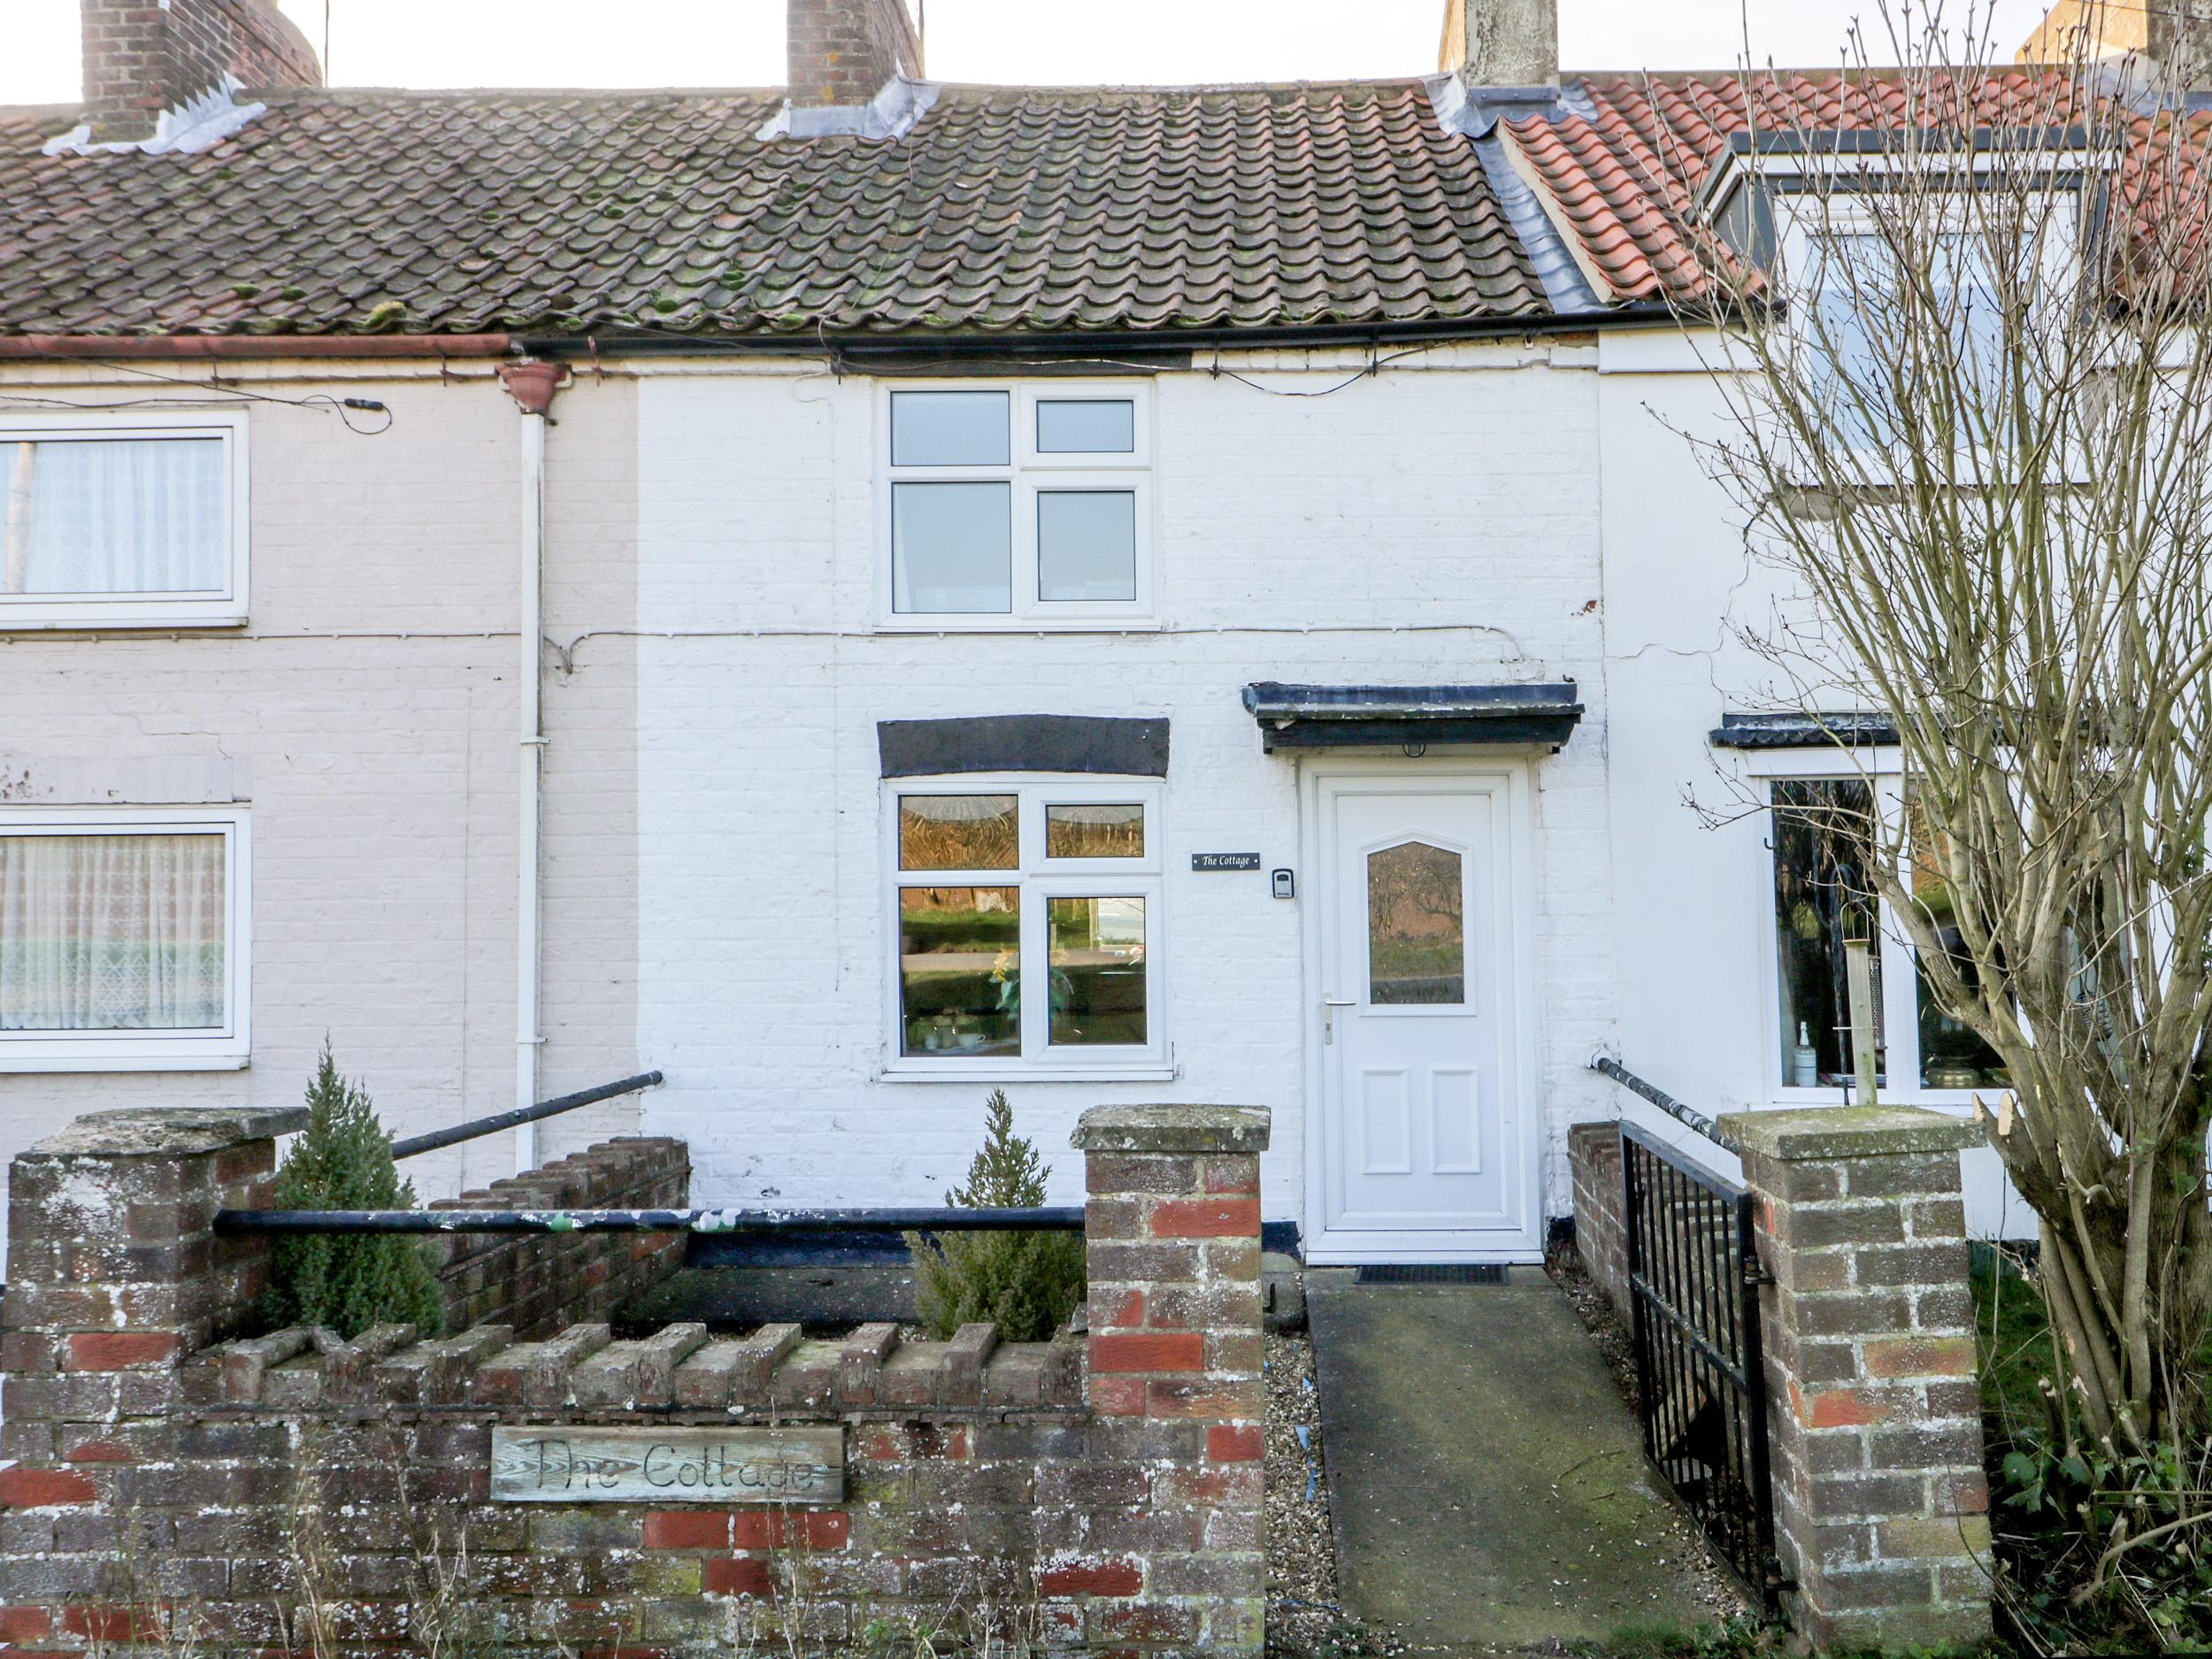 Holiday Cottage Reviews for The Cottage - Cottage Holiday in Driffield, East Yorkshire